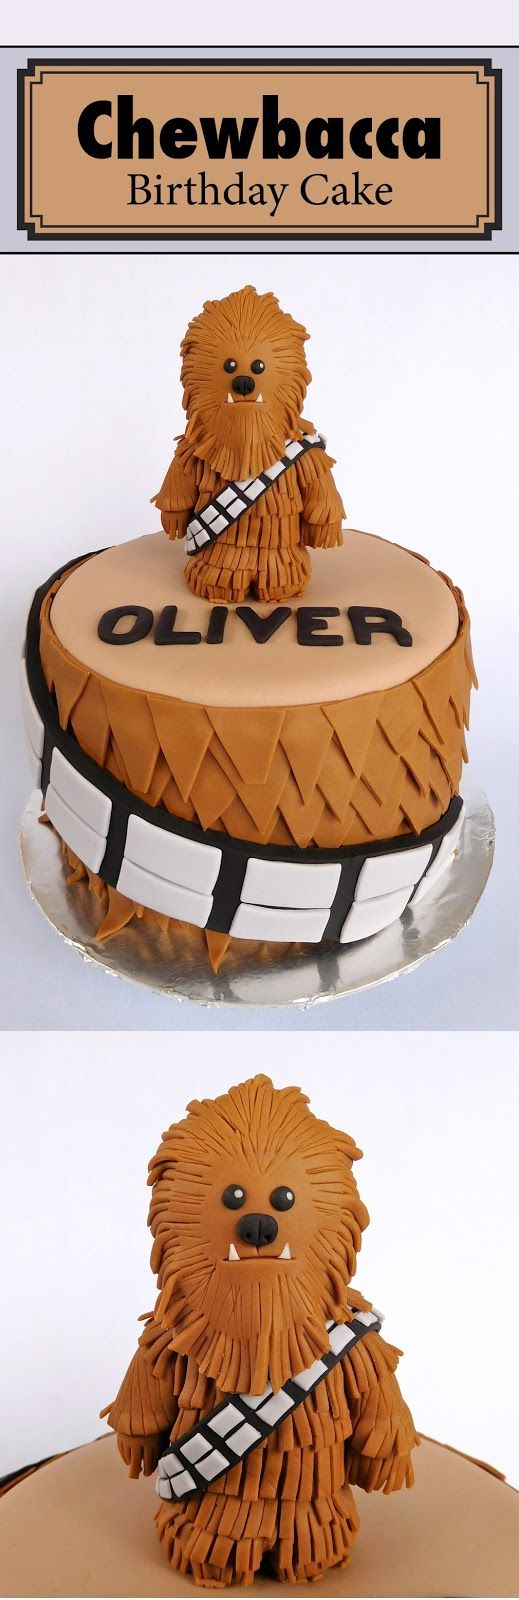 chewbacca cake - star wars cake